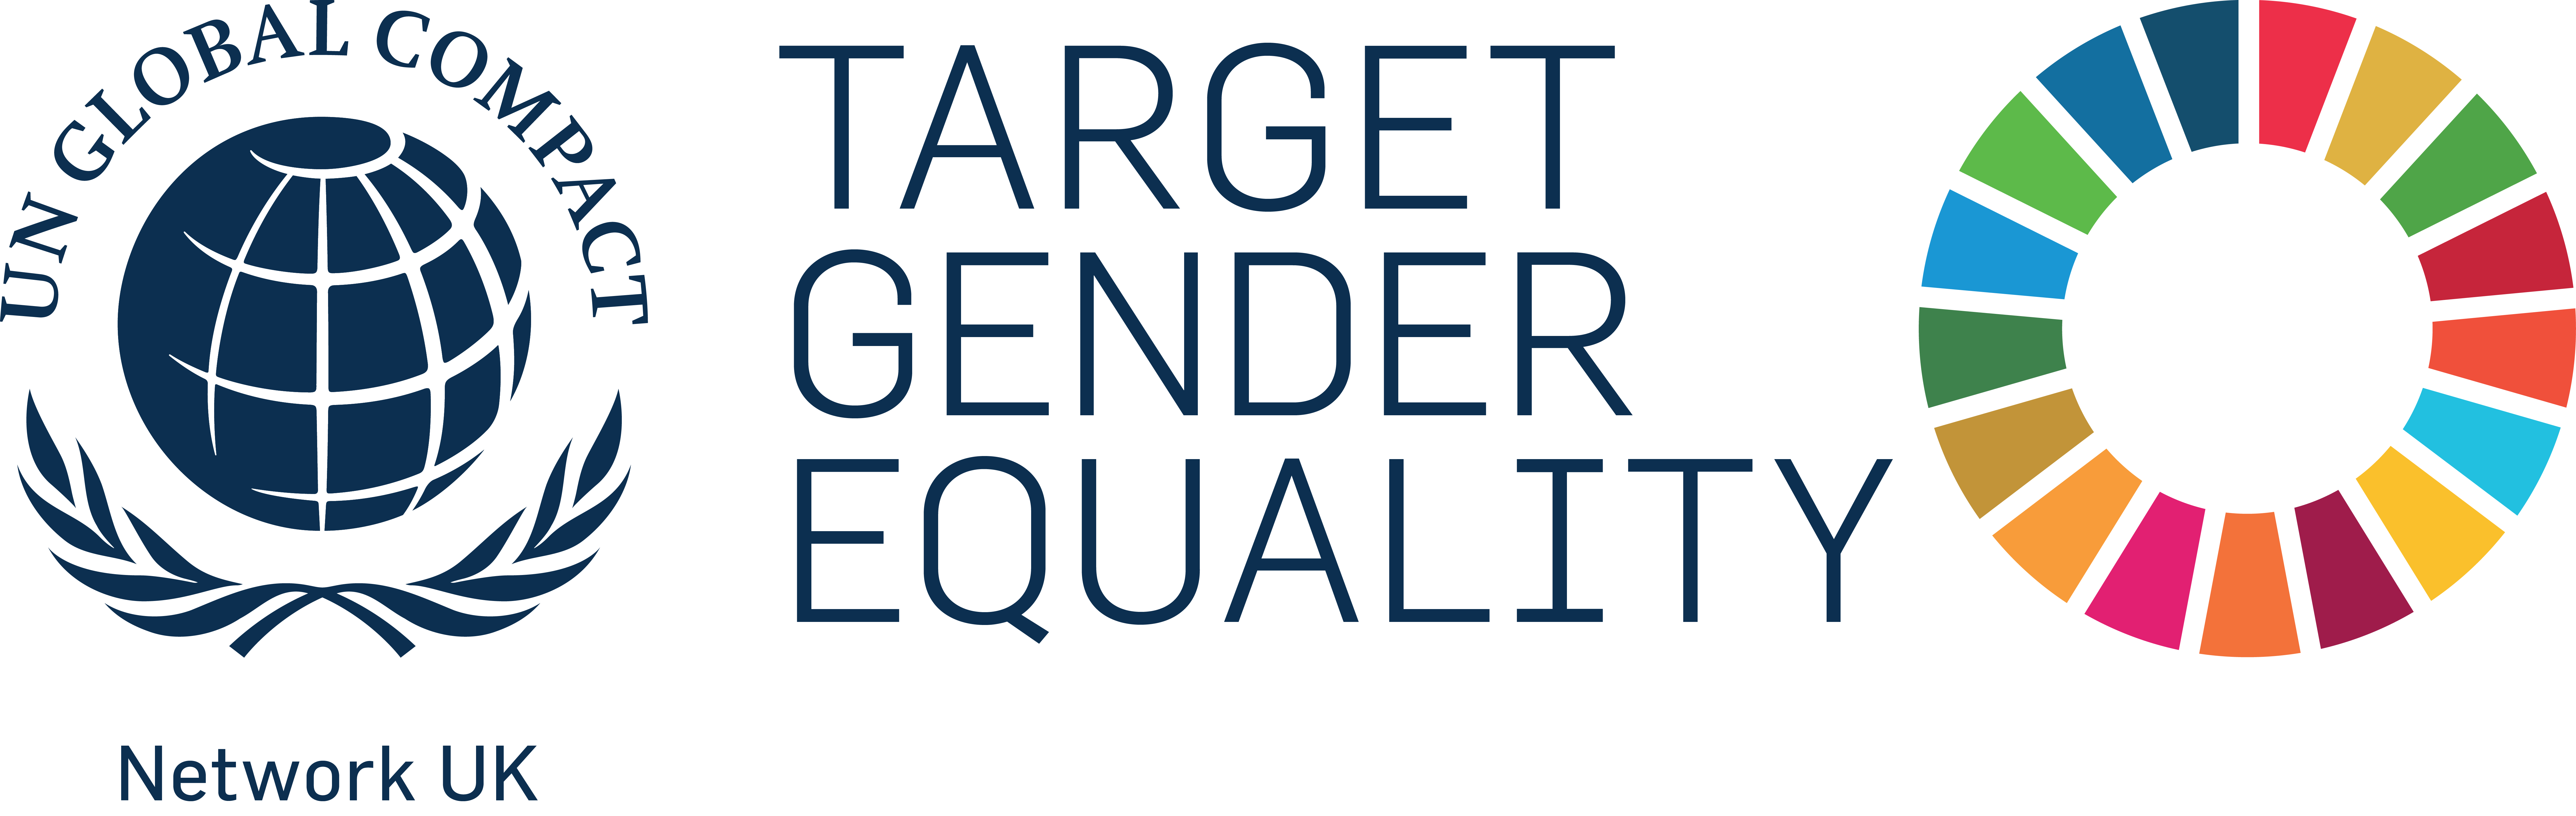 Target Equality-United Kingdom